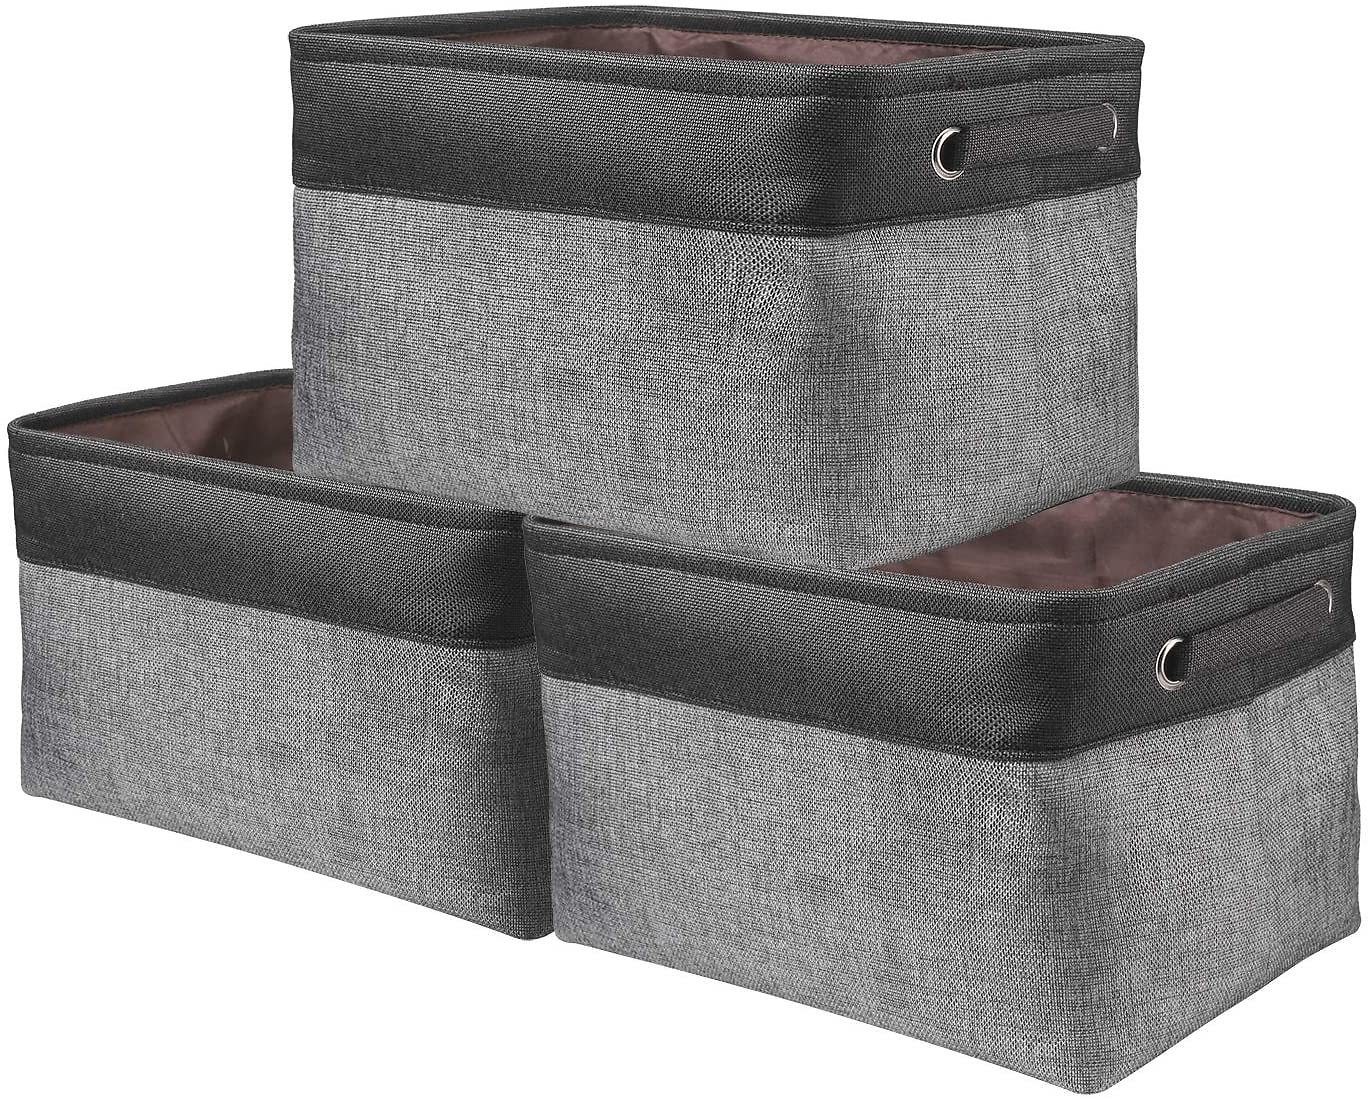 Awekris Large Storage Basket Bin Set [3-Pack] Storage Cube Box Foldable Canvas Fabric Collapsible Organizer with Handles for Home Office Closet Toys Clothes Kids Room Nursery (Grey) (Black and Grey)